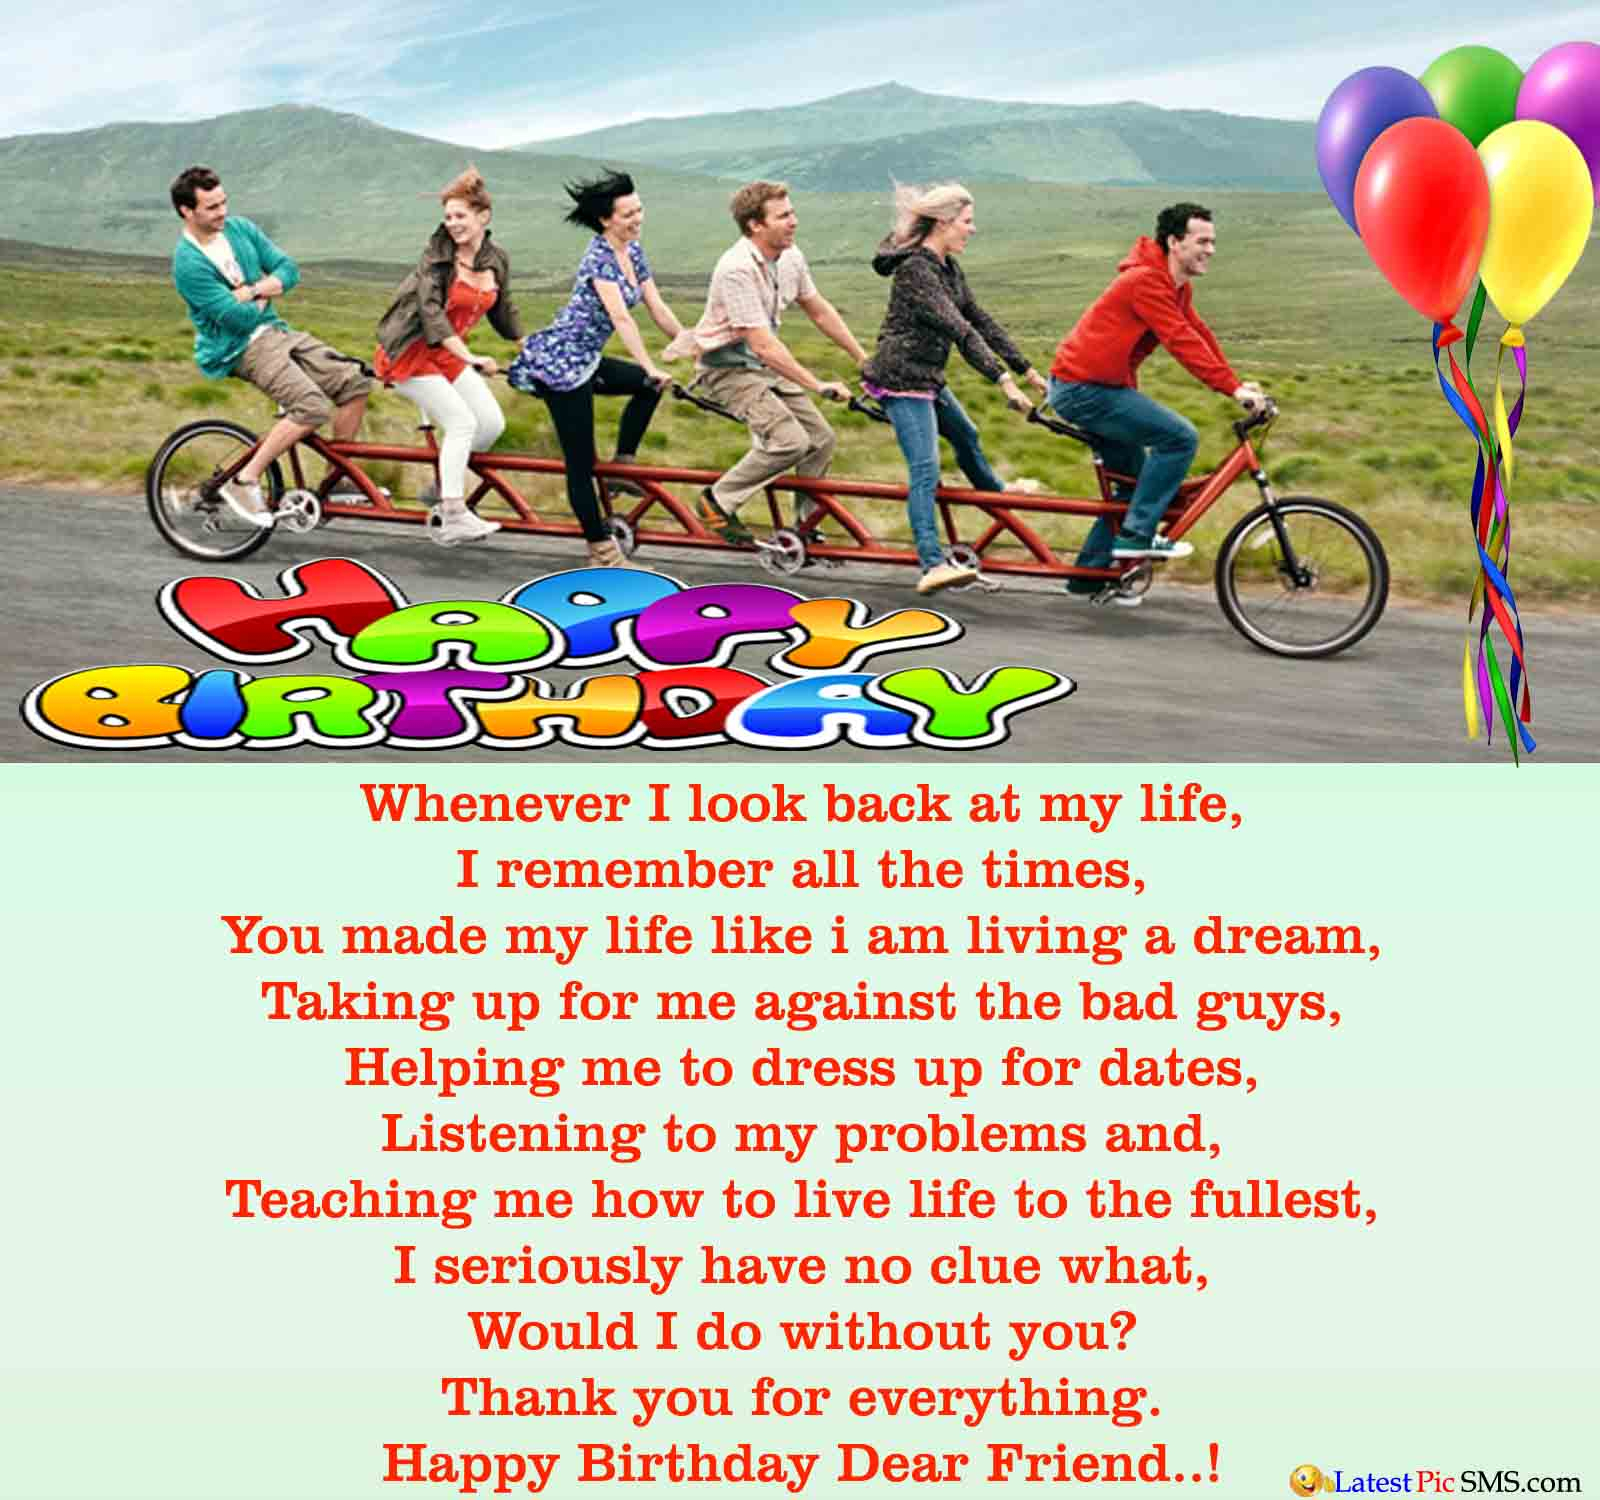 birthday wish for best friend forever in hindi ; best-friends-forever-in-hindi-girl-boy-happy-birthday-wishes-for-best-friend-latest-picture-sms